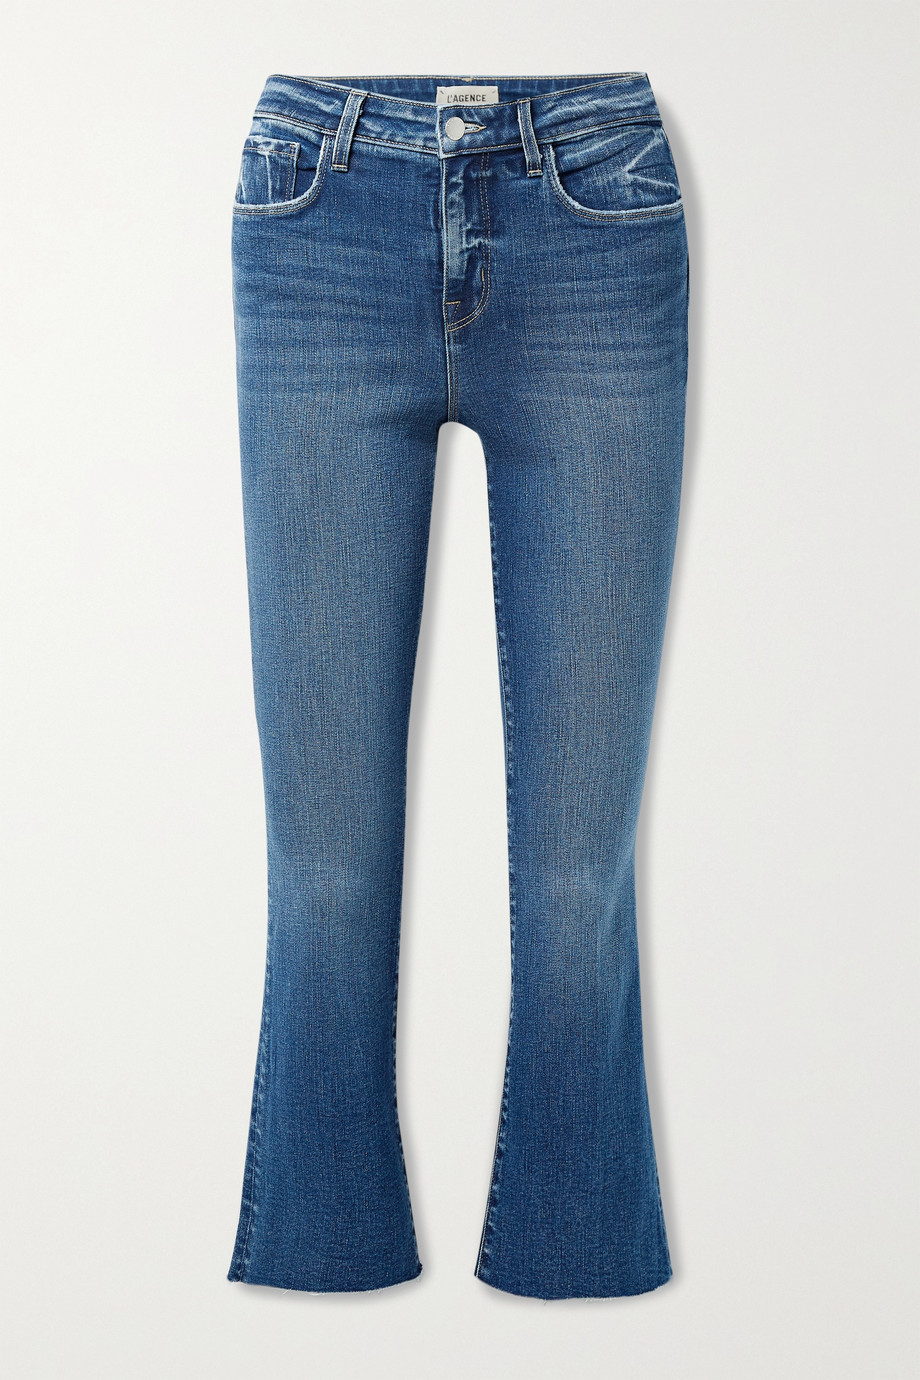 L'AGENCE Kendra cropped distressed high-rise flared jeans